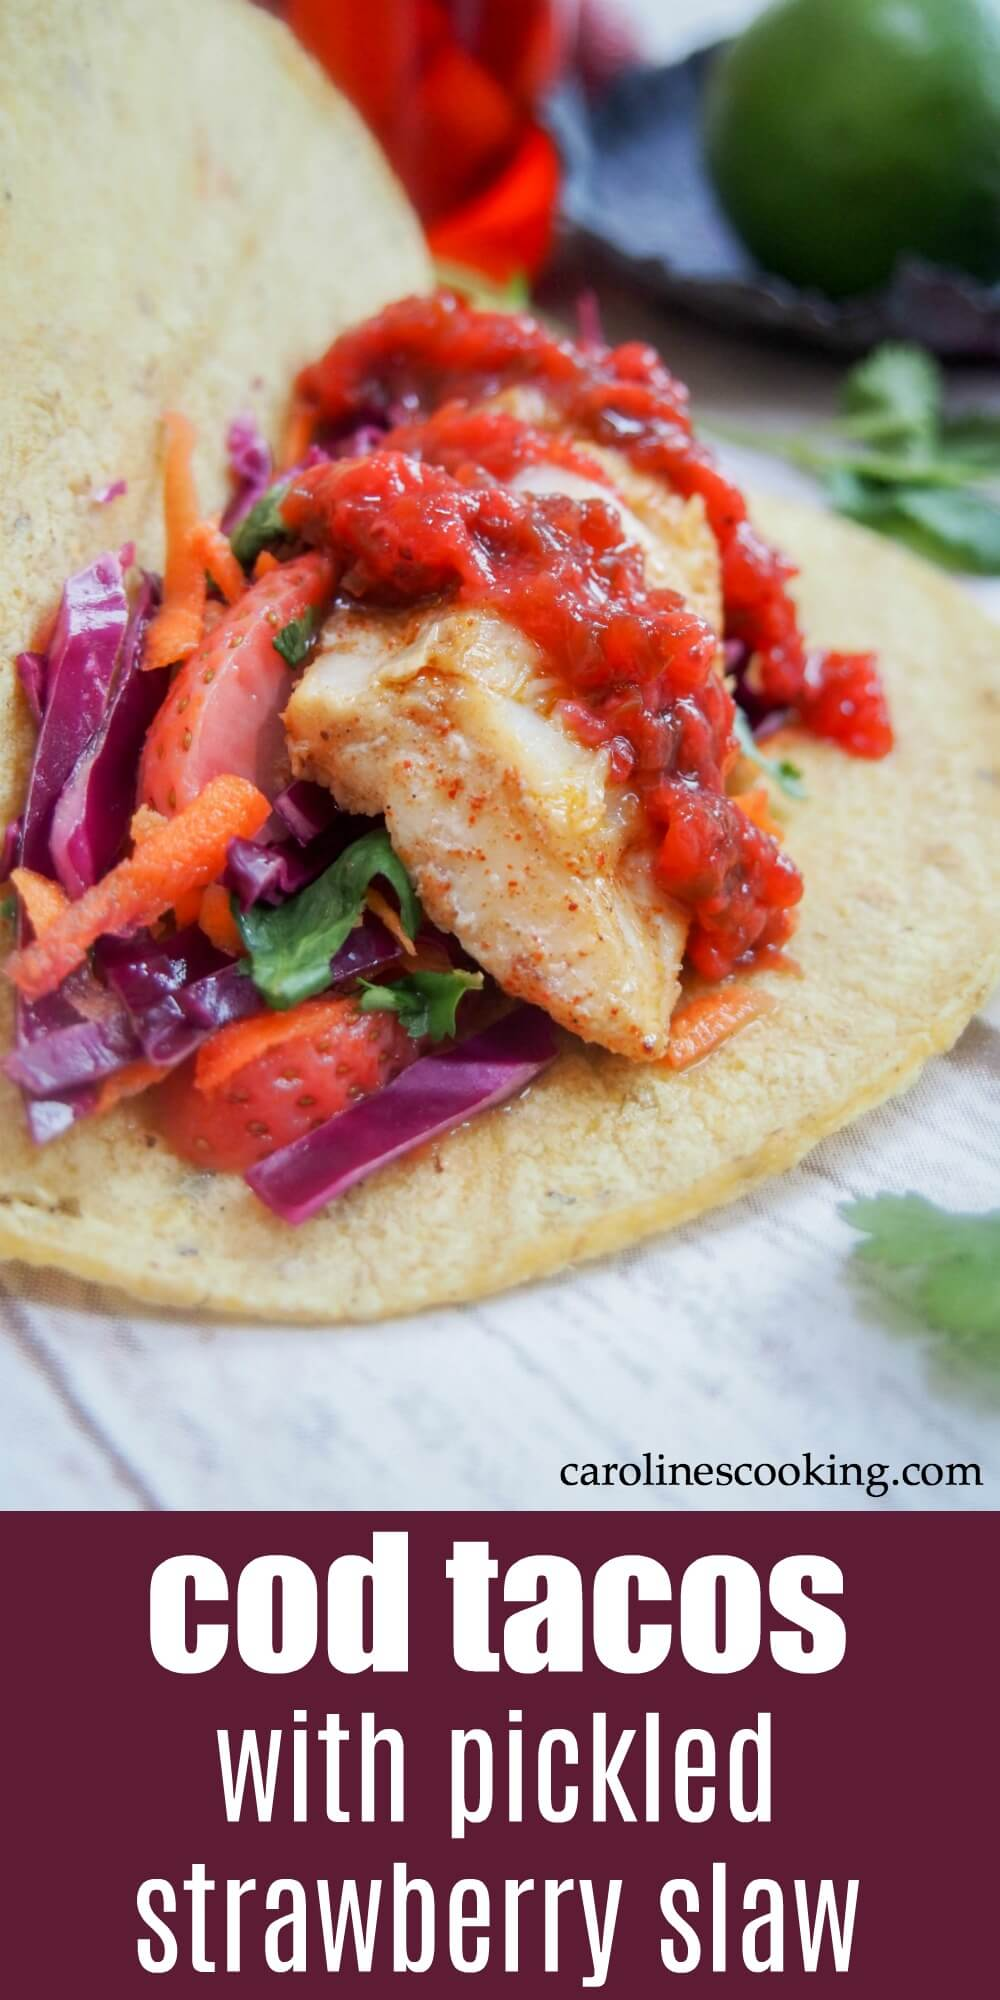 These cod tacos are not your average fish tacos. The fish has some of your more typical seasoning, but there's some added zing from the tasty pickled strawberry slaw and strawberry-jalapeno sauce. An easy, colorful and fresh-tasting meal. #strawberry #fishtaco #cod #pickledstrawberry